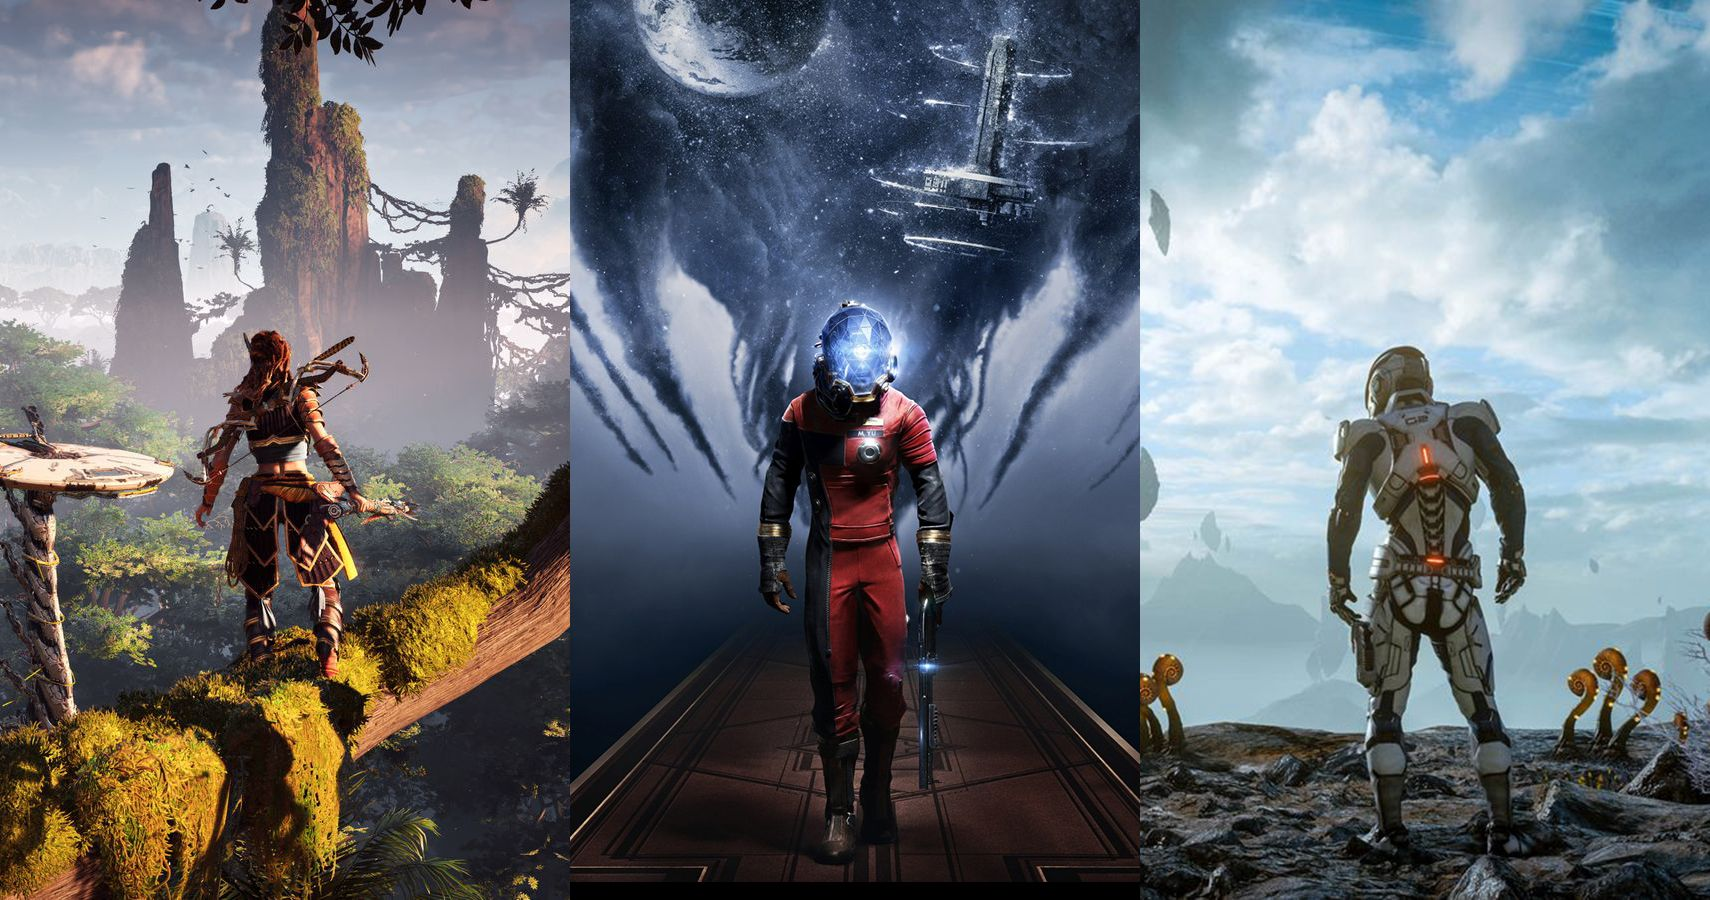 10 Sci-Fi Games To Play If You Loved Horizon Zero Dawn